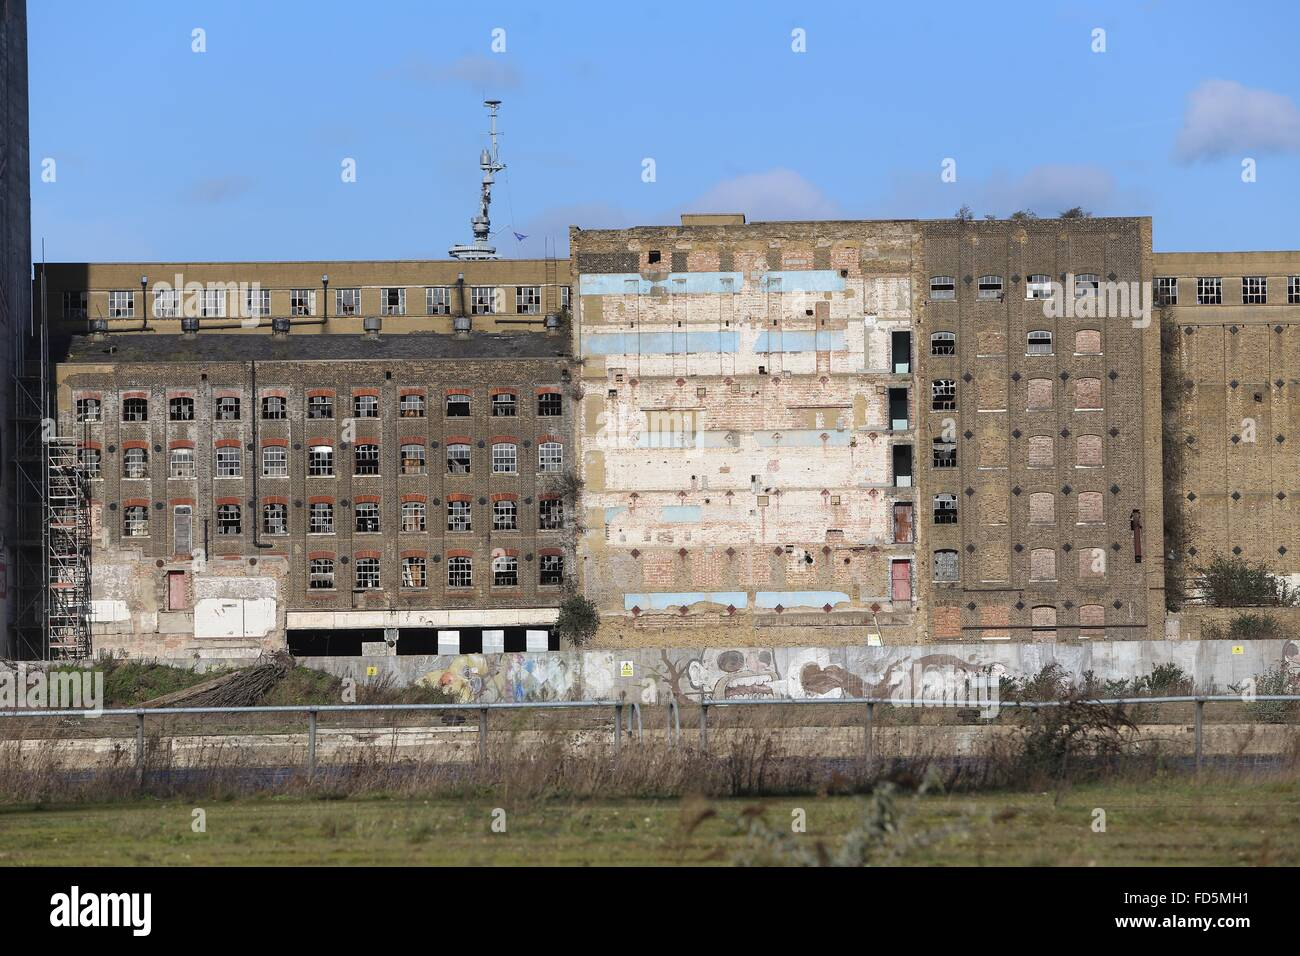 Millennium Mills Royal Victoria Dock Silvertown London flower mill derelict  smashed windows blue sky redevelopment - Stock Image